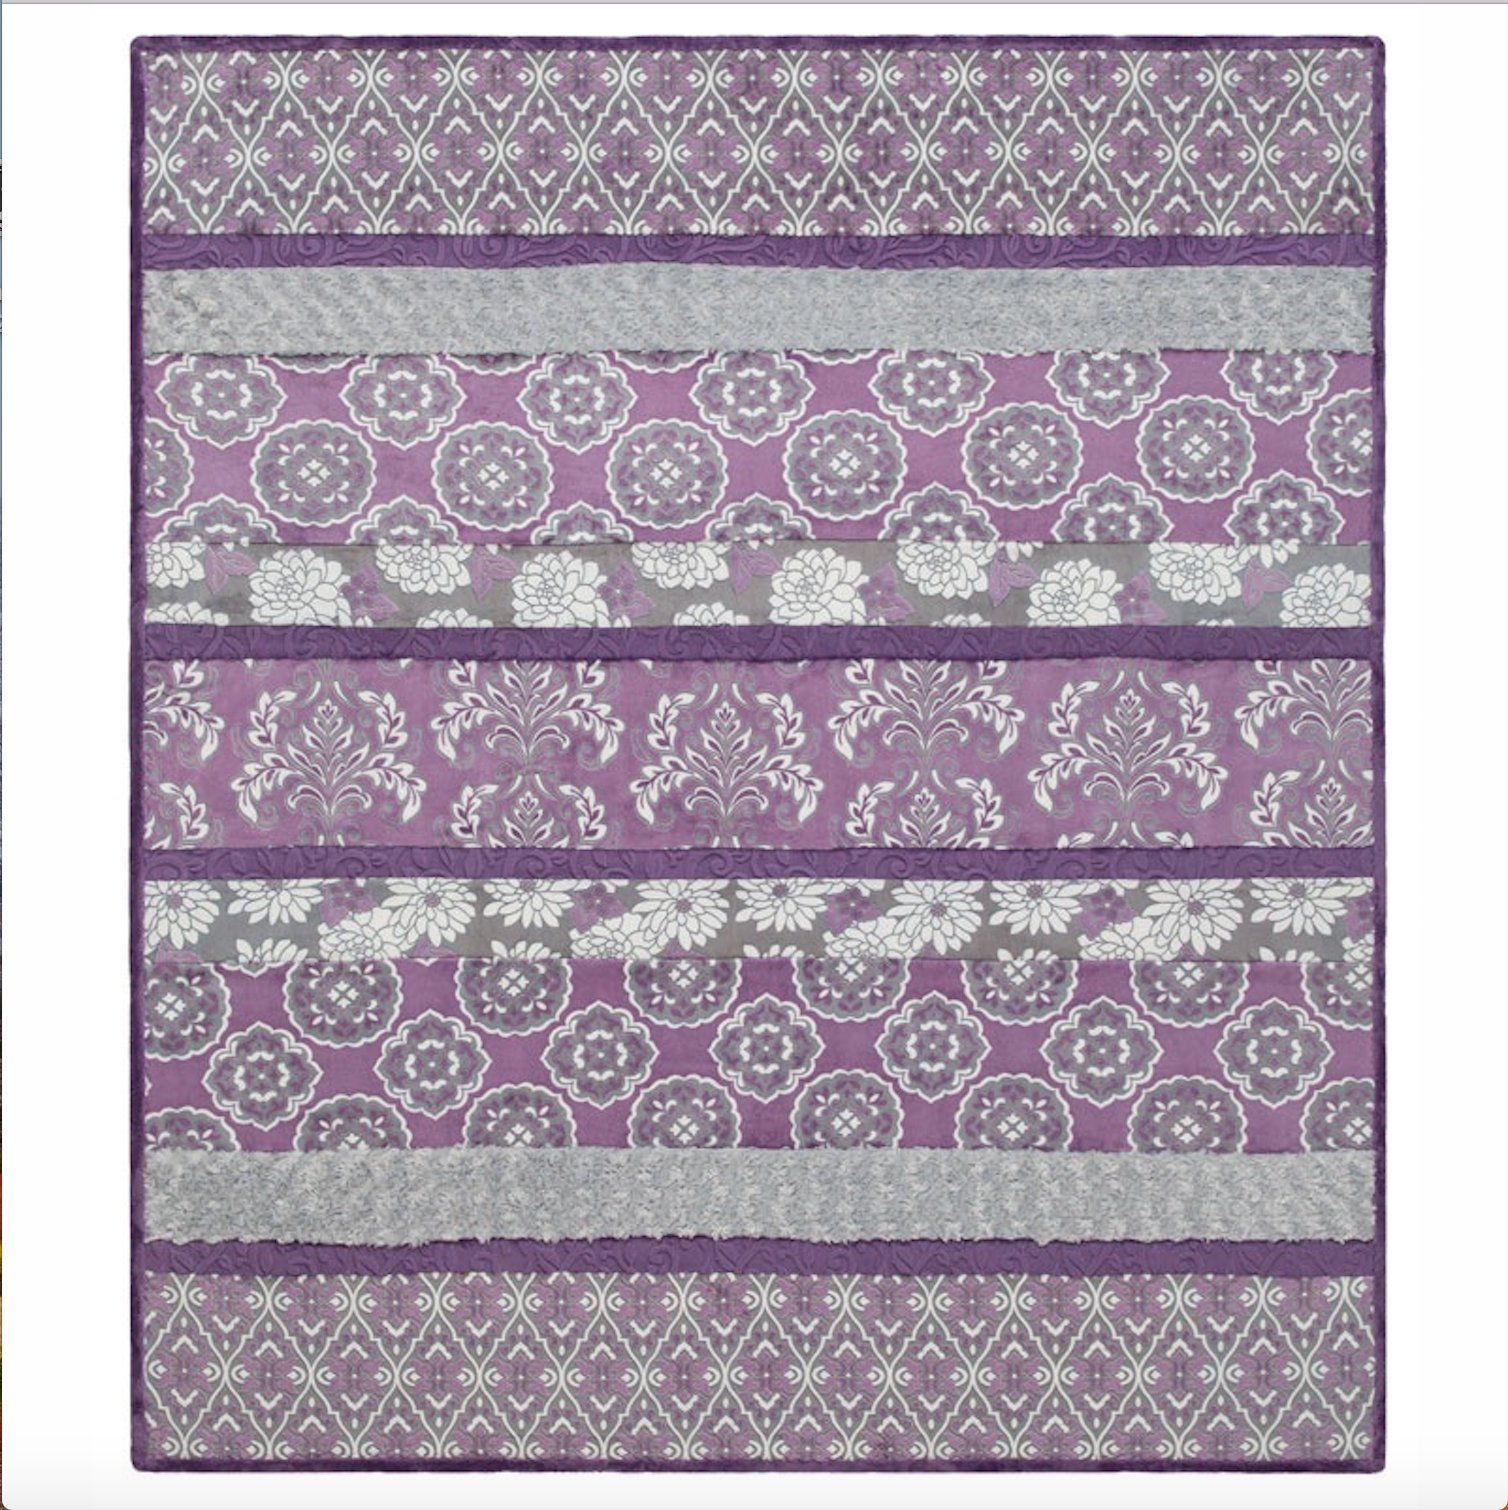 Shannon Fabrics Crazy 8 Violeta Cuddle Kit With Backing Cuddle Quilt Kit Cuddle Fabric Cuddle Blanket Valentine S Day Quilt Kit Minky Quilt Fabric Kit